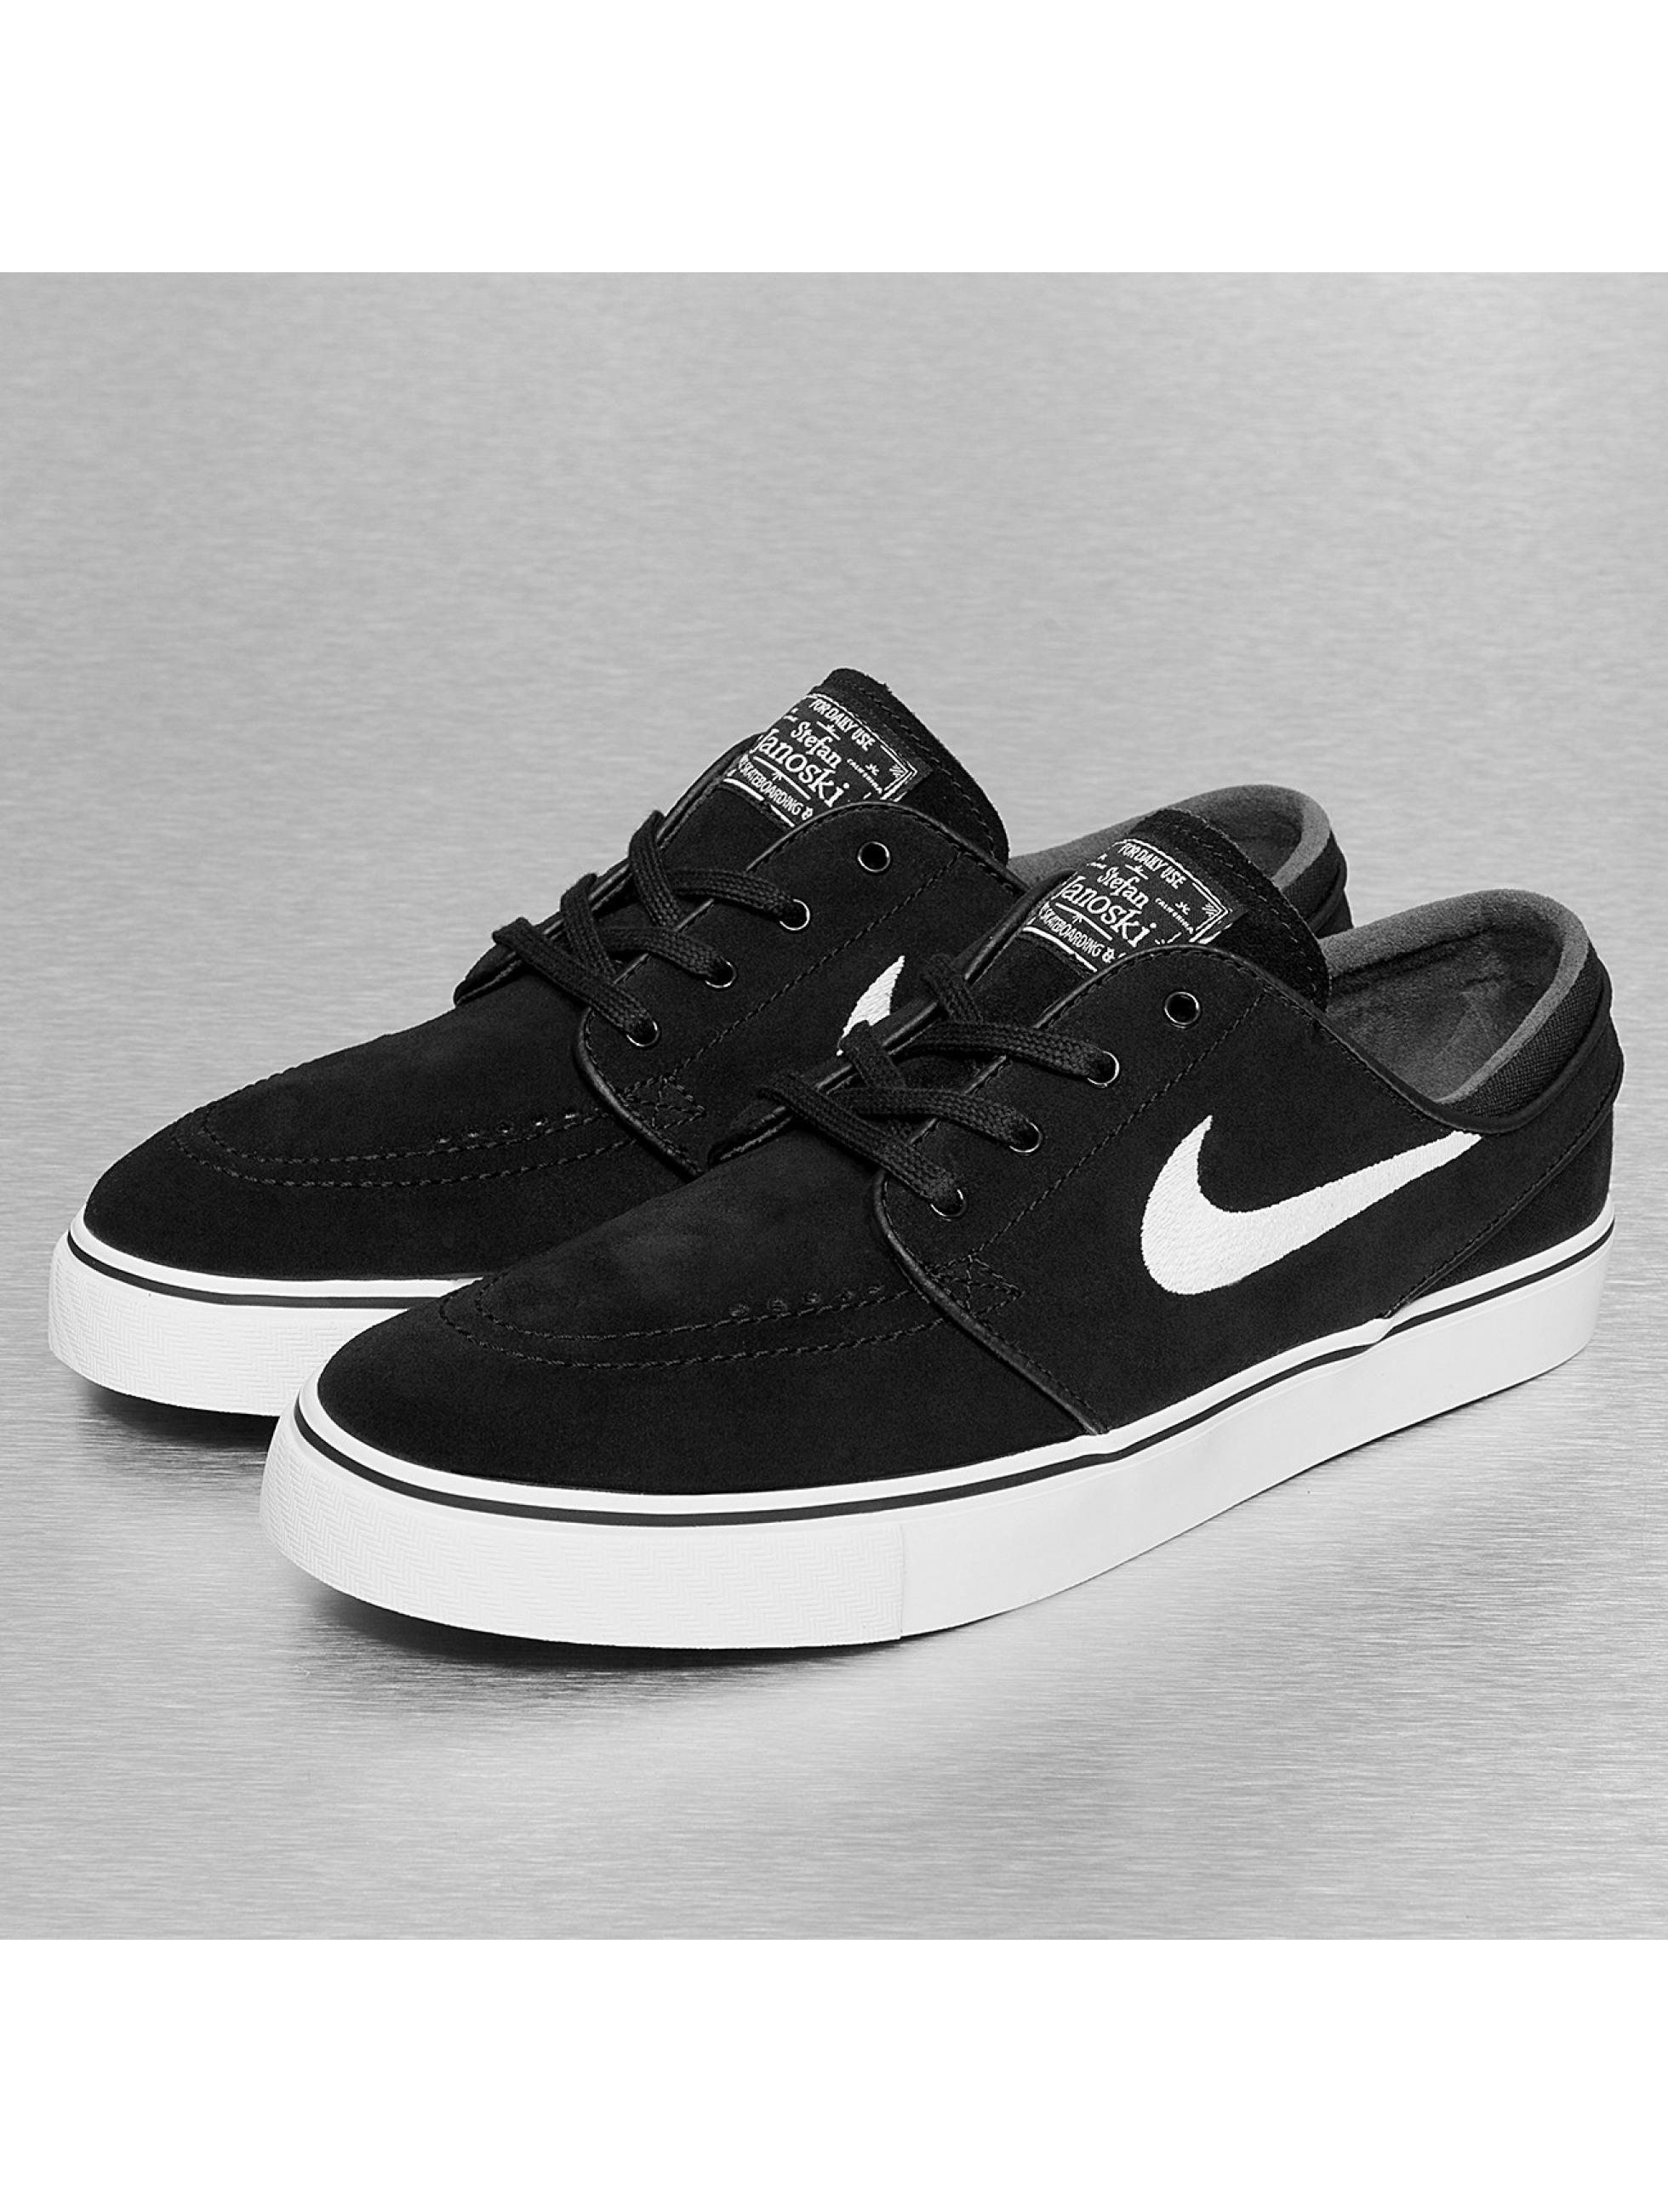 nike sb herren sneaker zoom stefan janoski in schwarz 173291. Black Bedroom Furniture Sets. Home Design Ideas